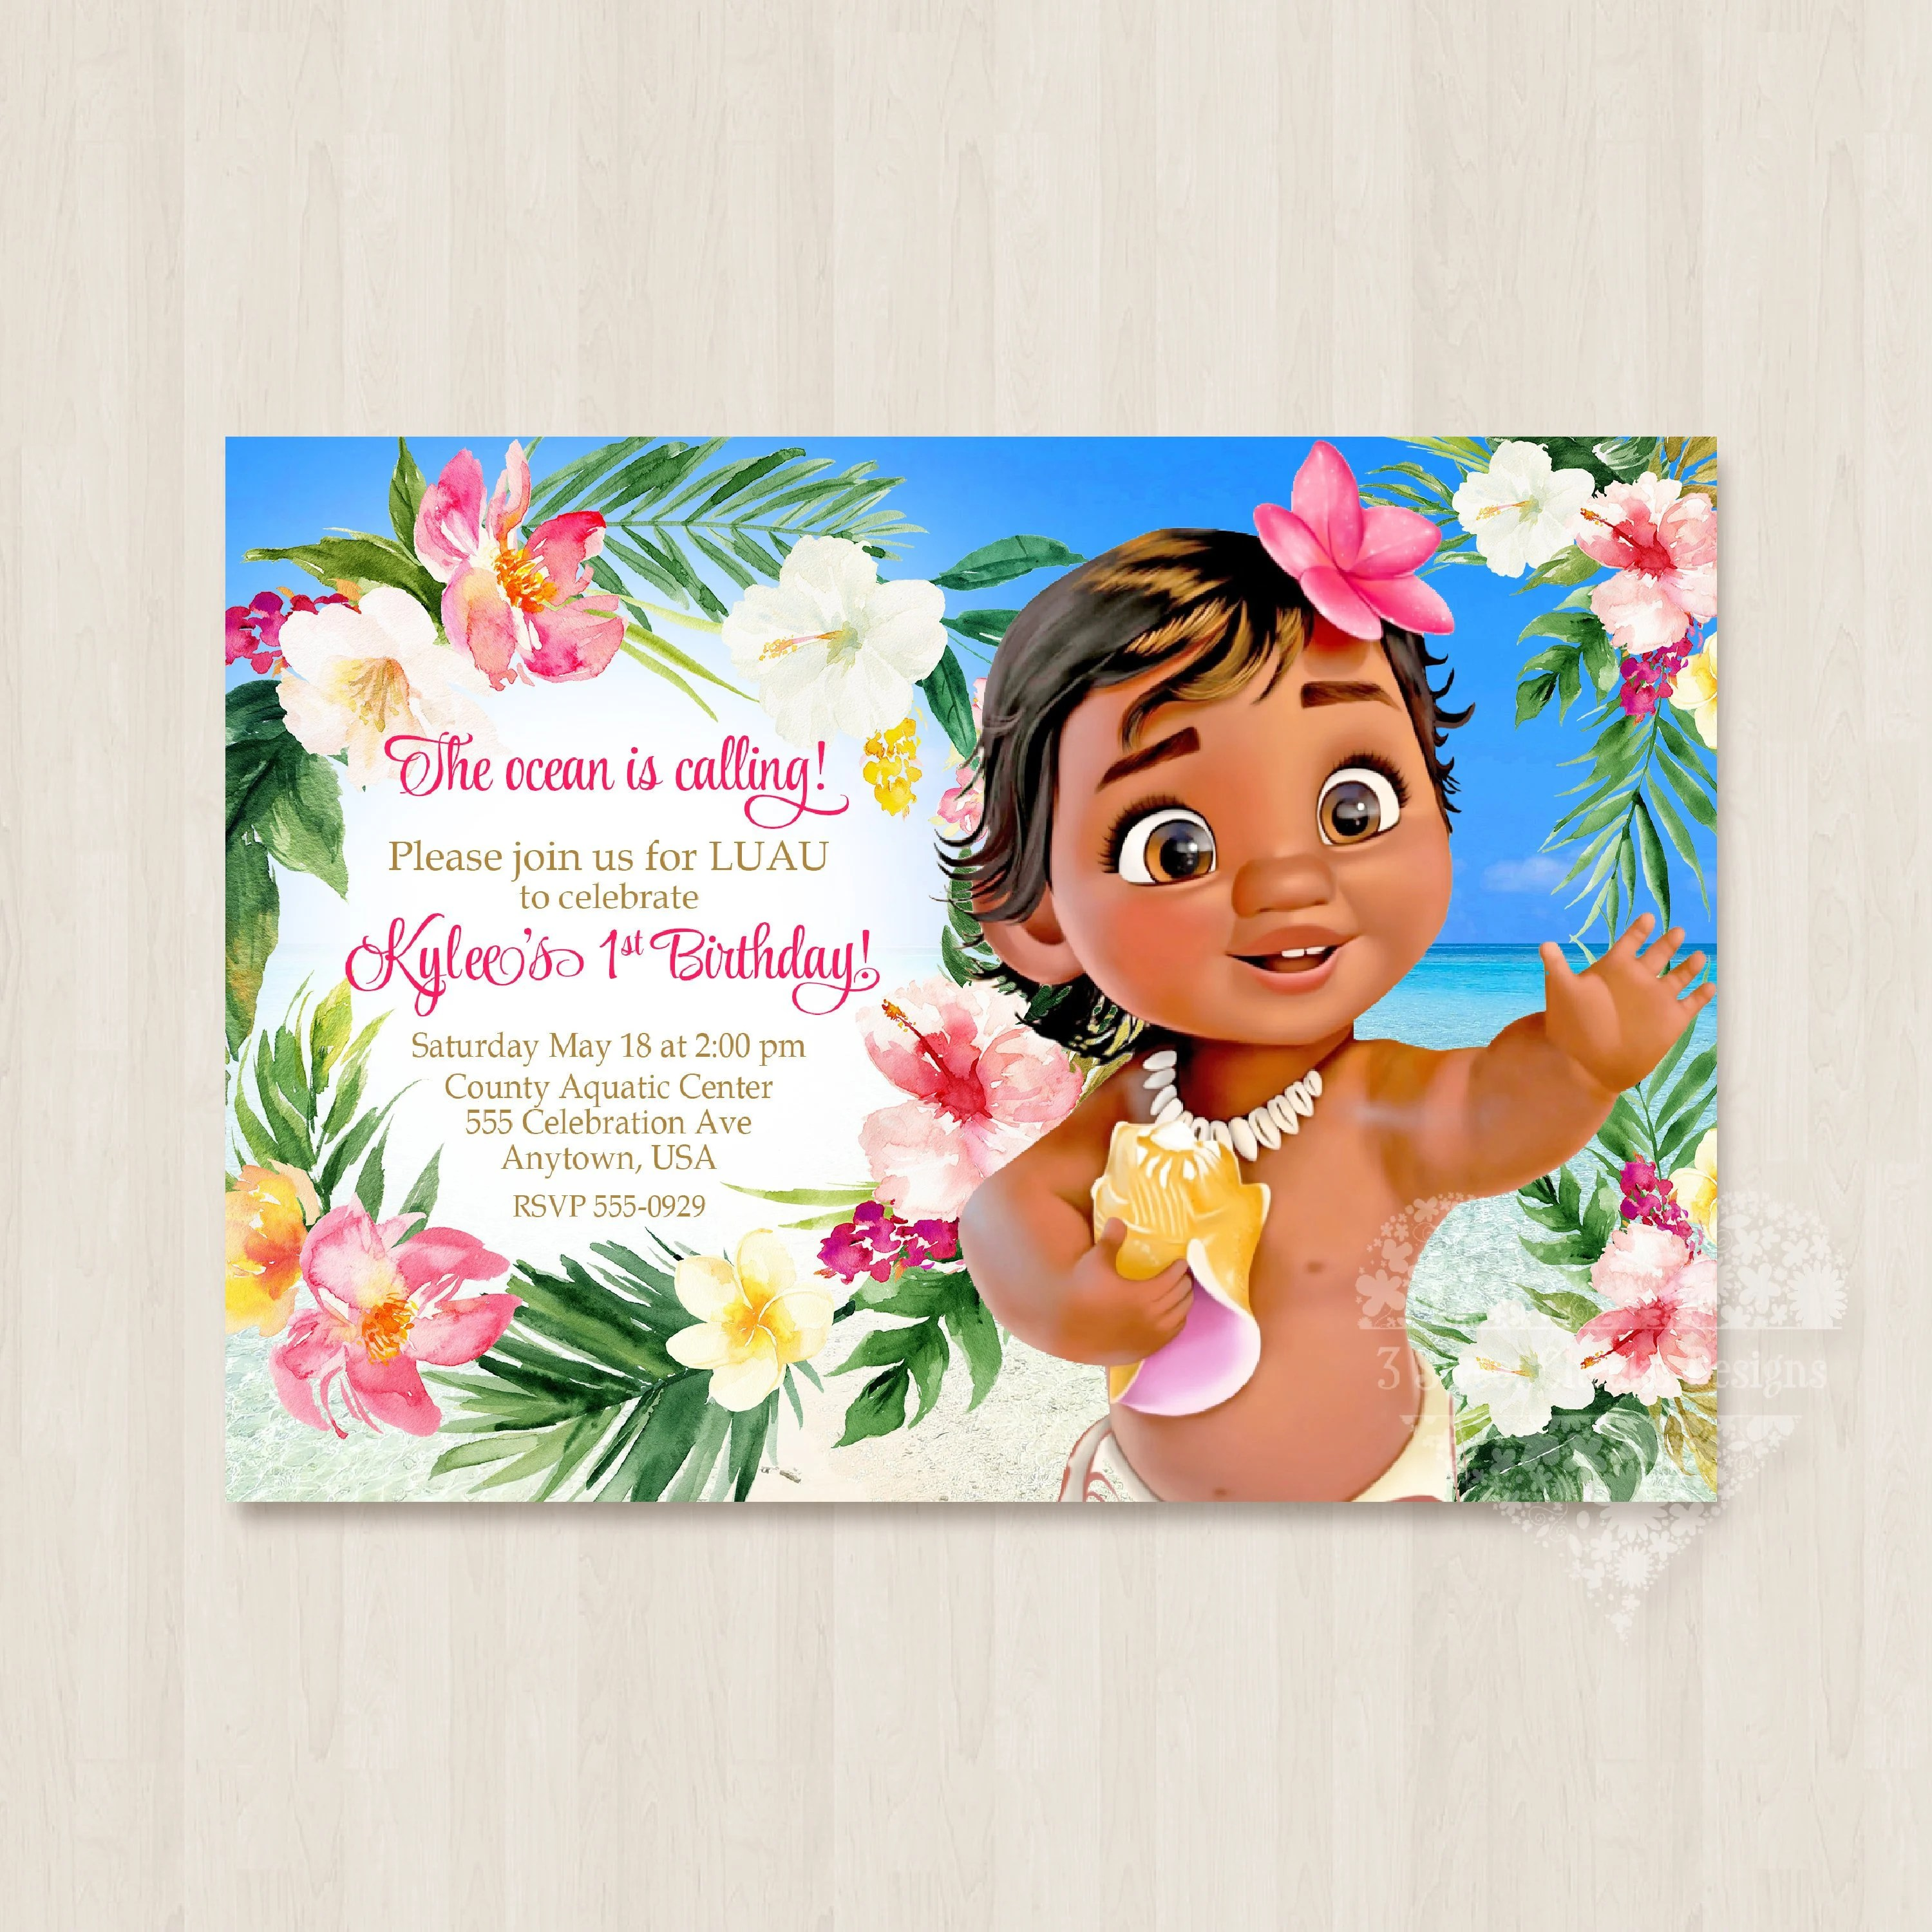 baby moana invitation digital file pink adorable cute girl birthday party personalized luau pool party